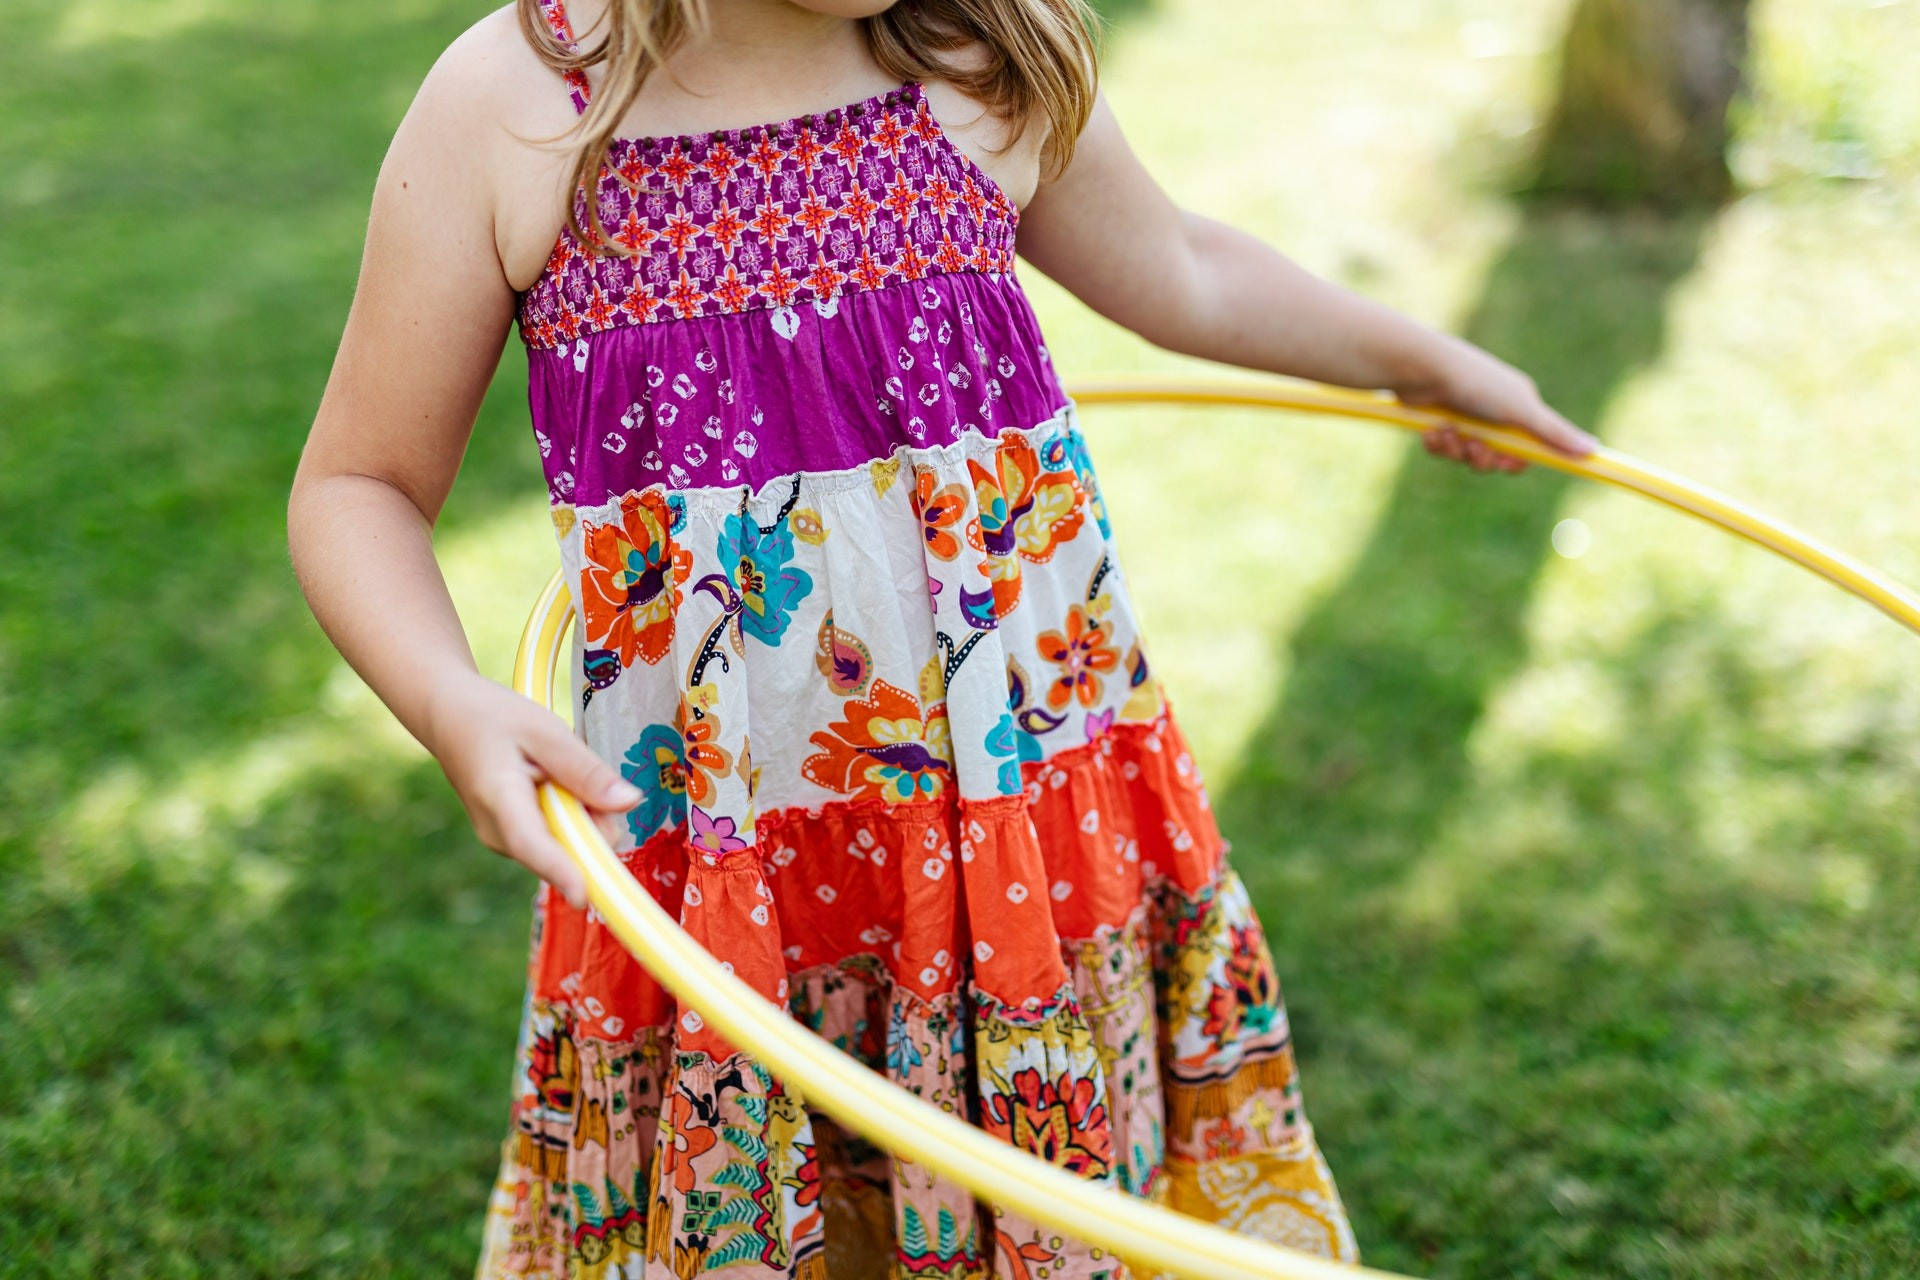 A young student plays with a hula hoop outside.